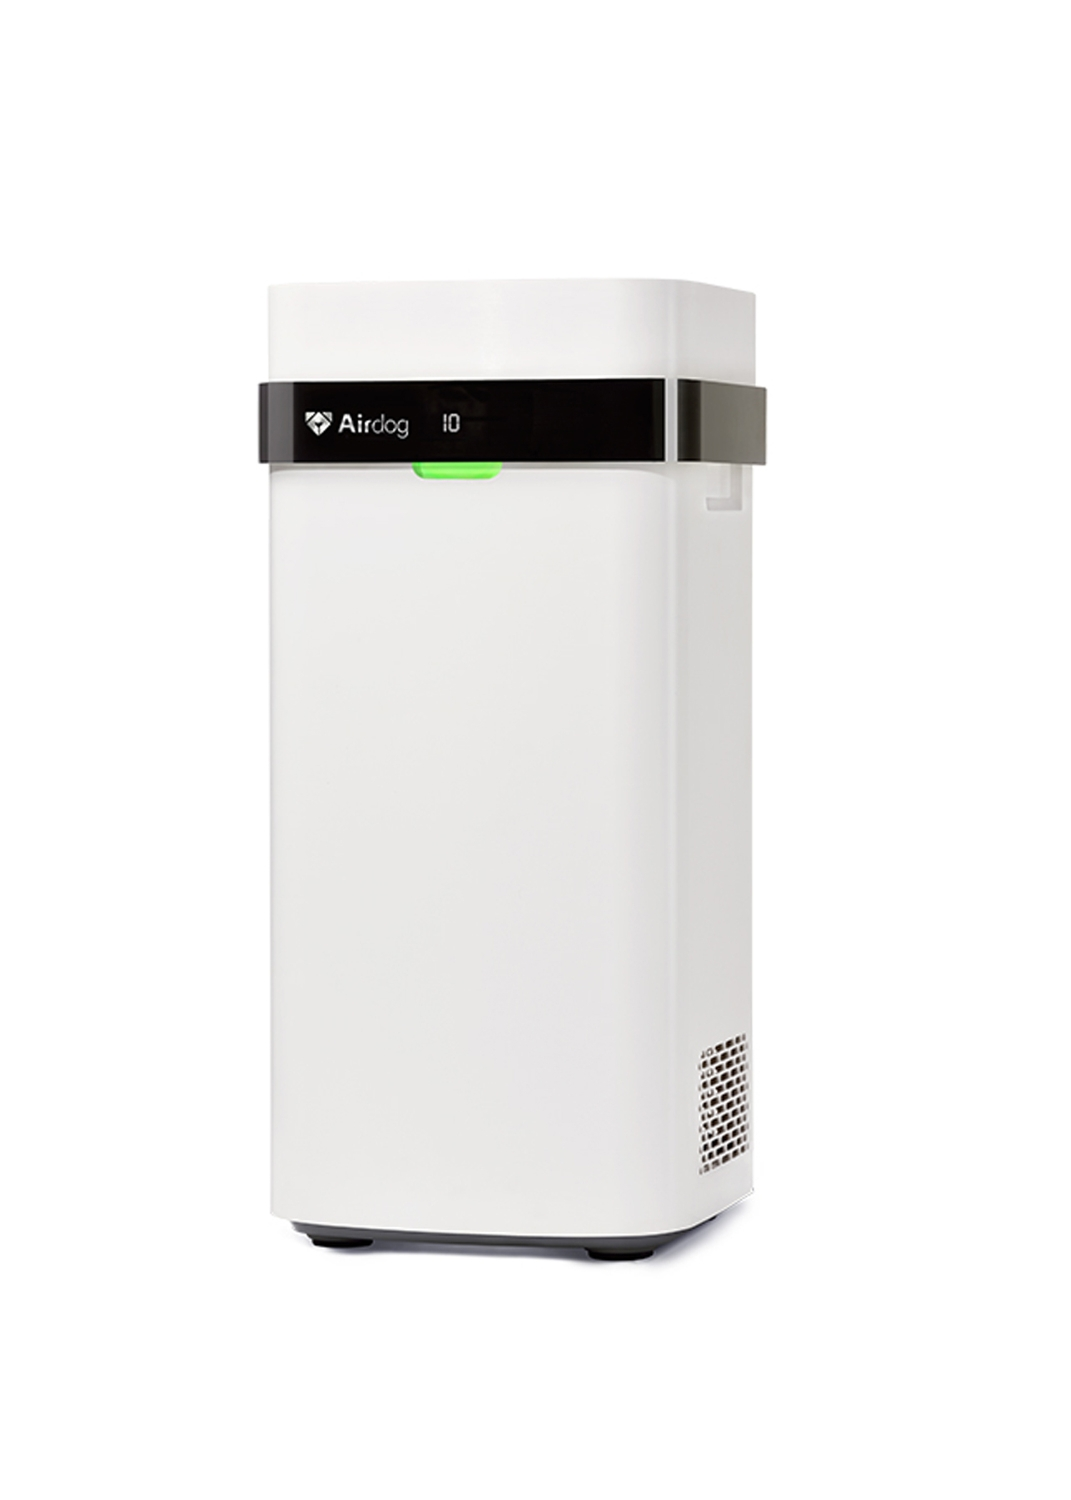 Great gadgets to get this winter: Kronos air purifier to keep your air clean